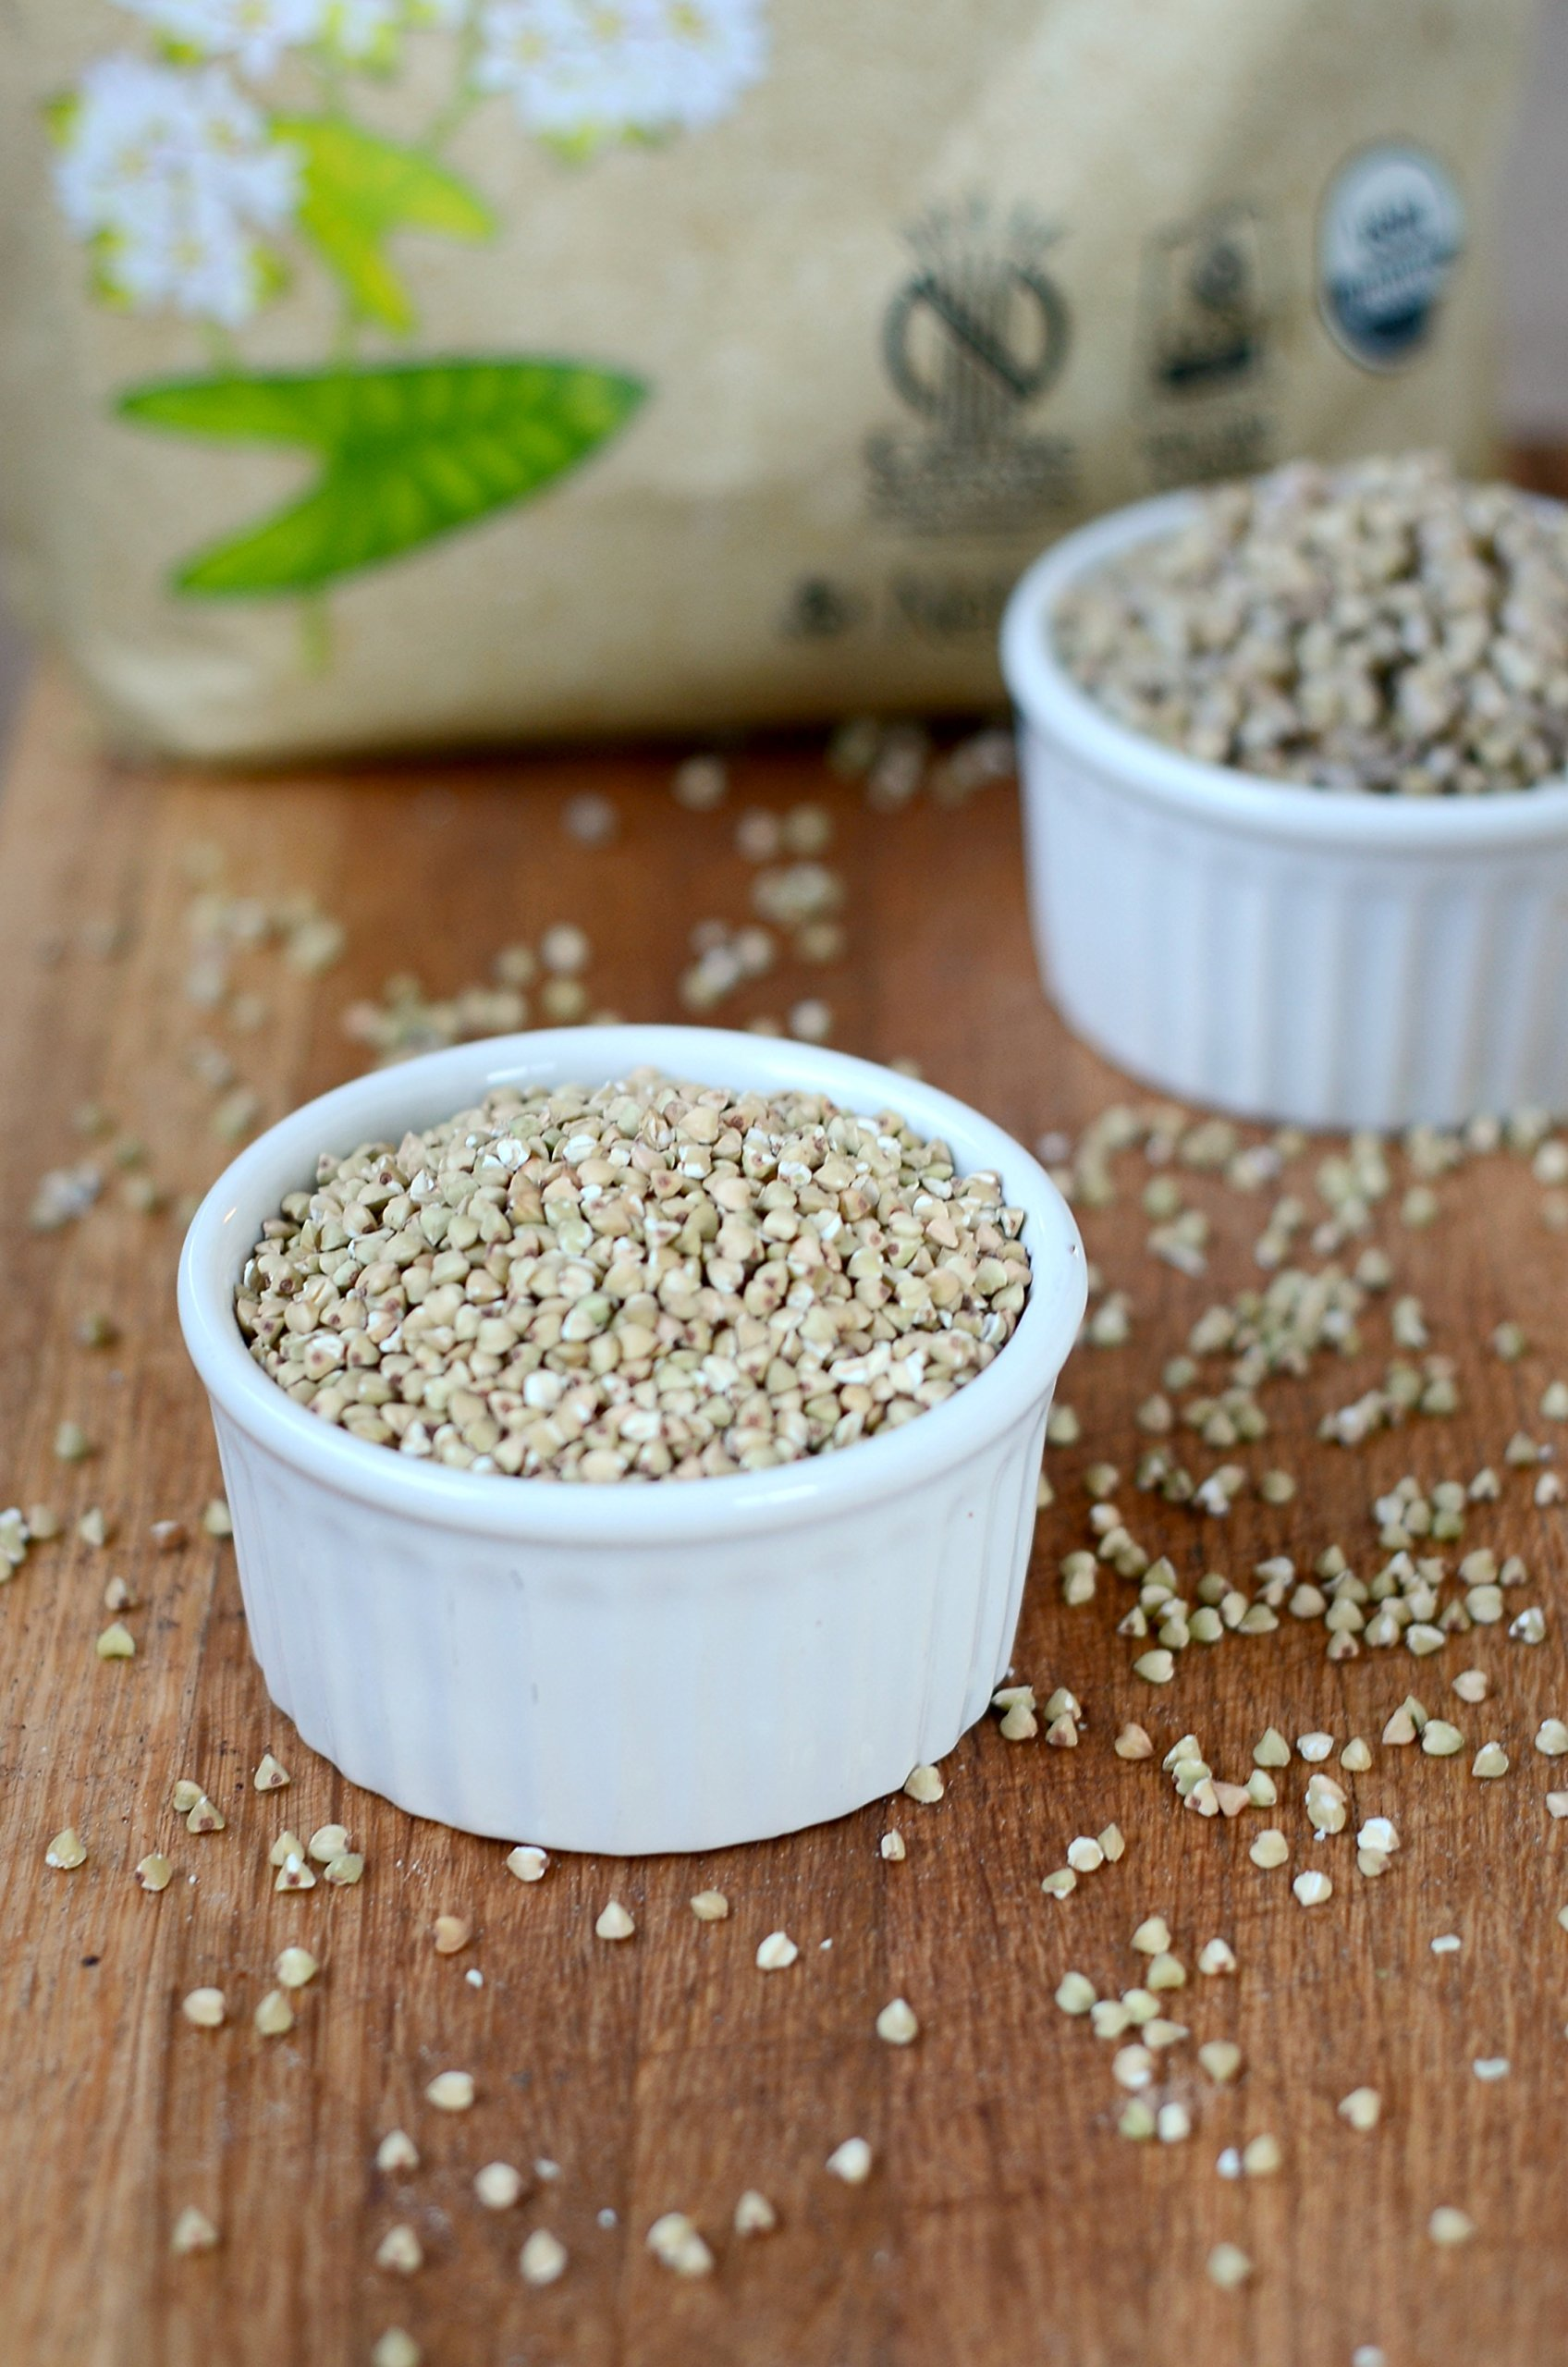 Organic Raw Hulled Buckwheat Groats (5lb) by Anthony's, Grown in USA, Gluten-Free by Anthony's (Image #6)